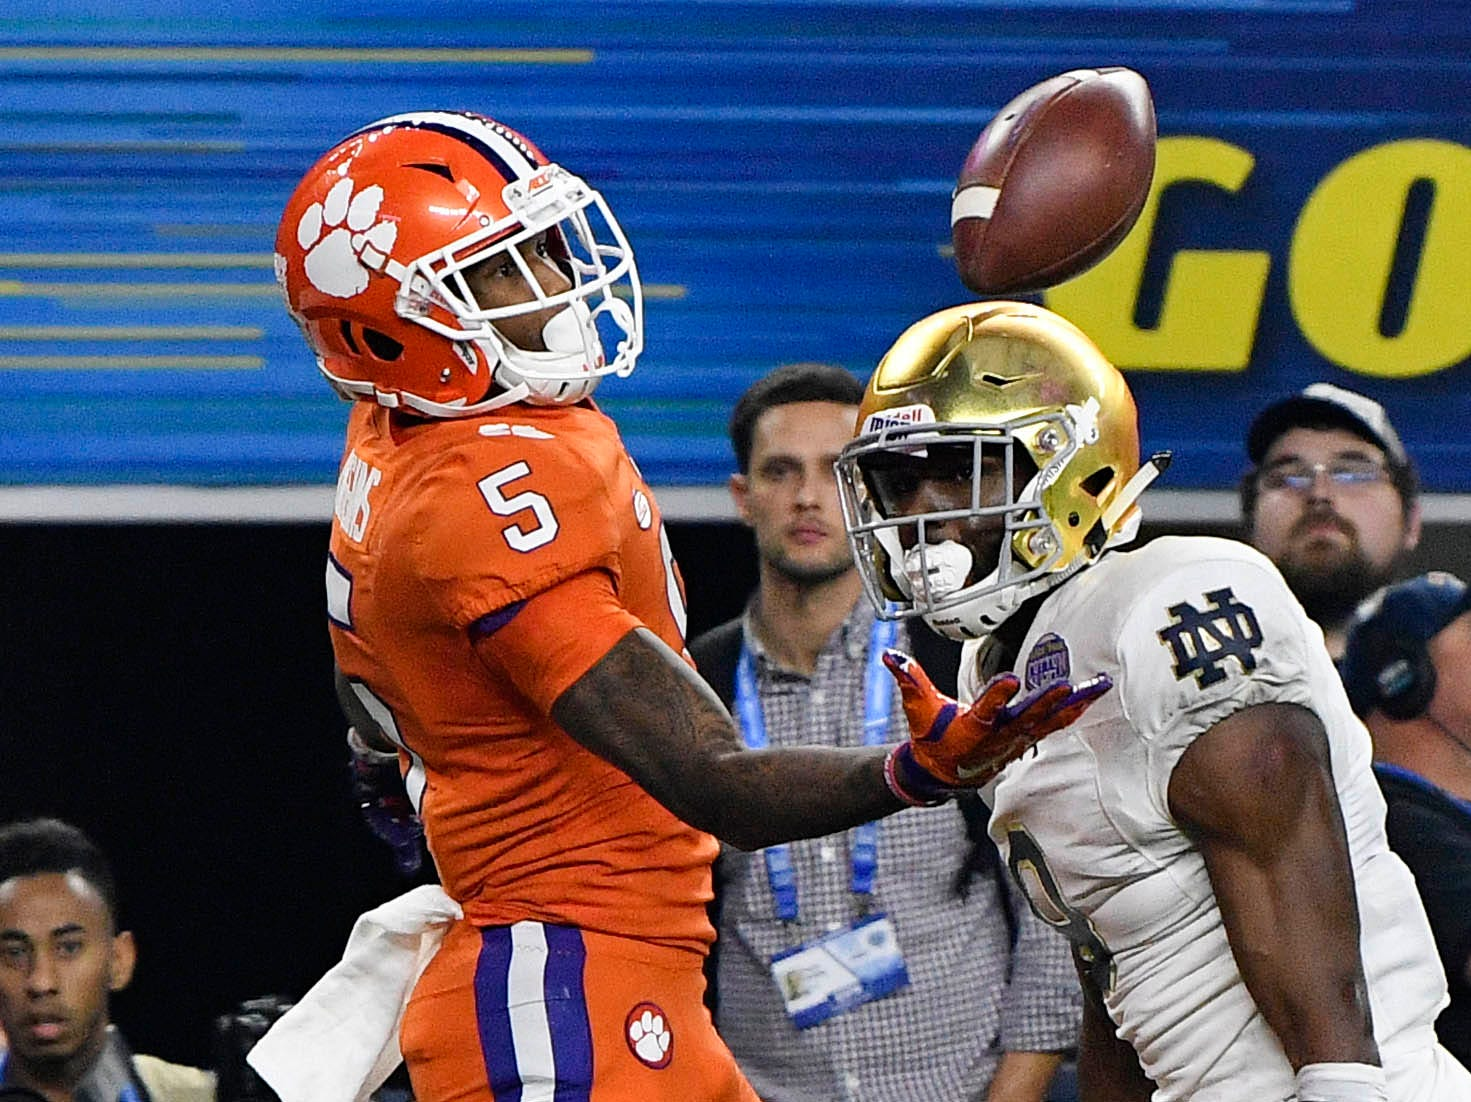 Dec. 29: Clemson Tigers wide receiver Tee Higgins (5) makes a catch for a touchdown ahead of Notre Dame Fighting Irish cornerback Donte Vaughn (8) during the second quarter of the Cotton Bowl.